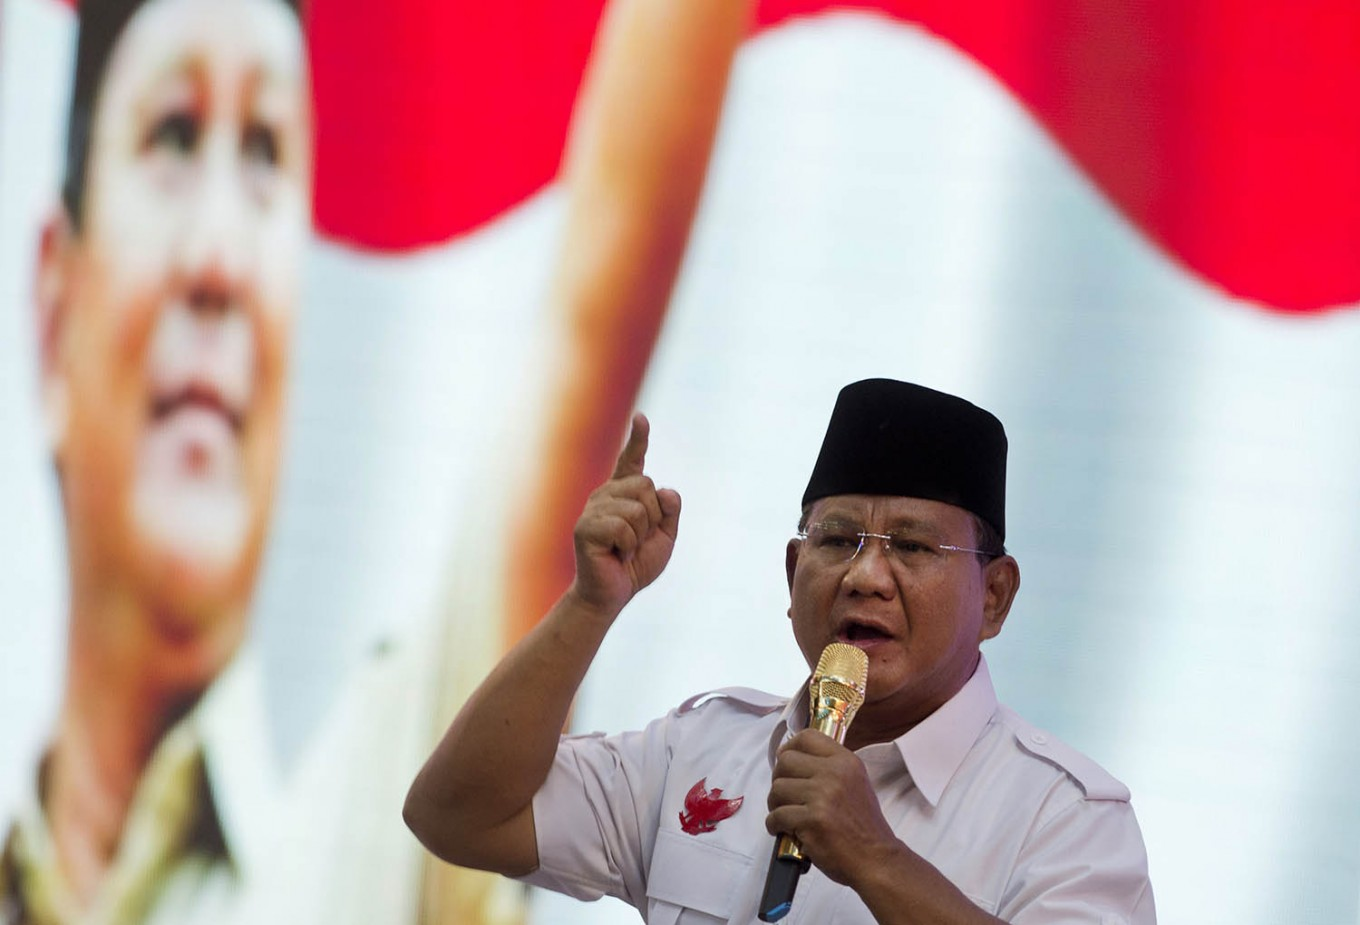 Prabowo touts Indonesia as moderate Muslim country